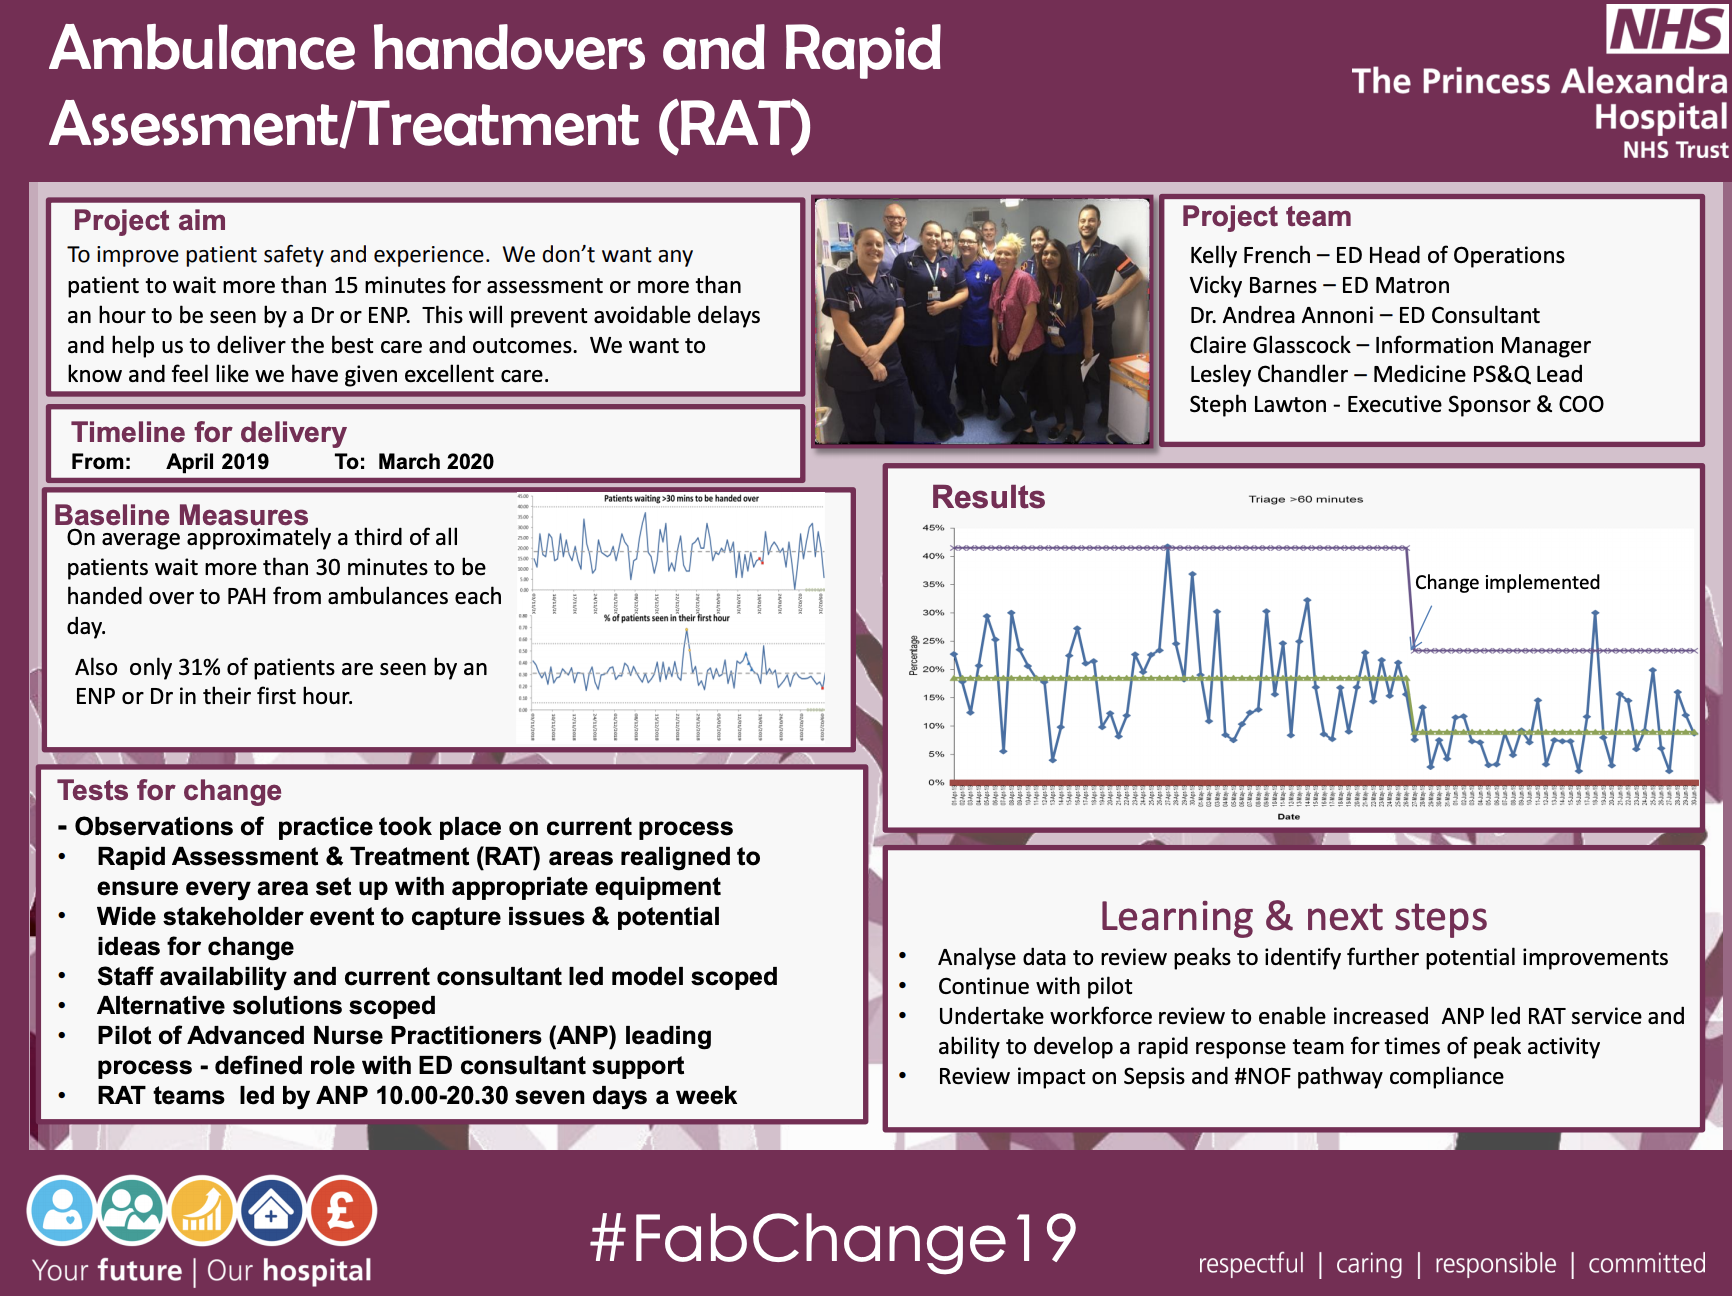 PAHT - Ambulance handovers and Rapid Assessment/Treatment (RAT) - @QualityFirstPAH featured image